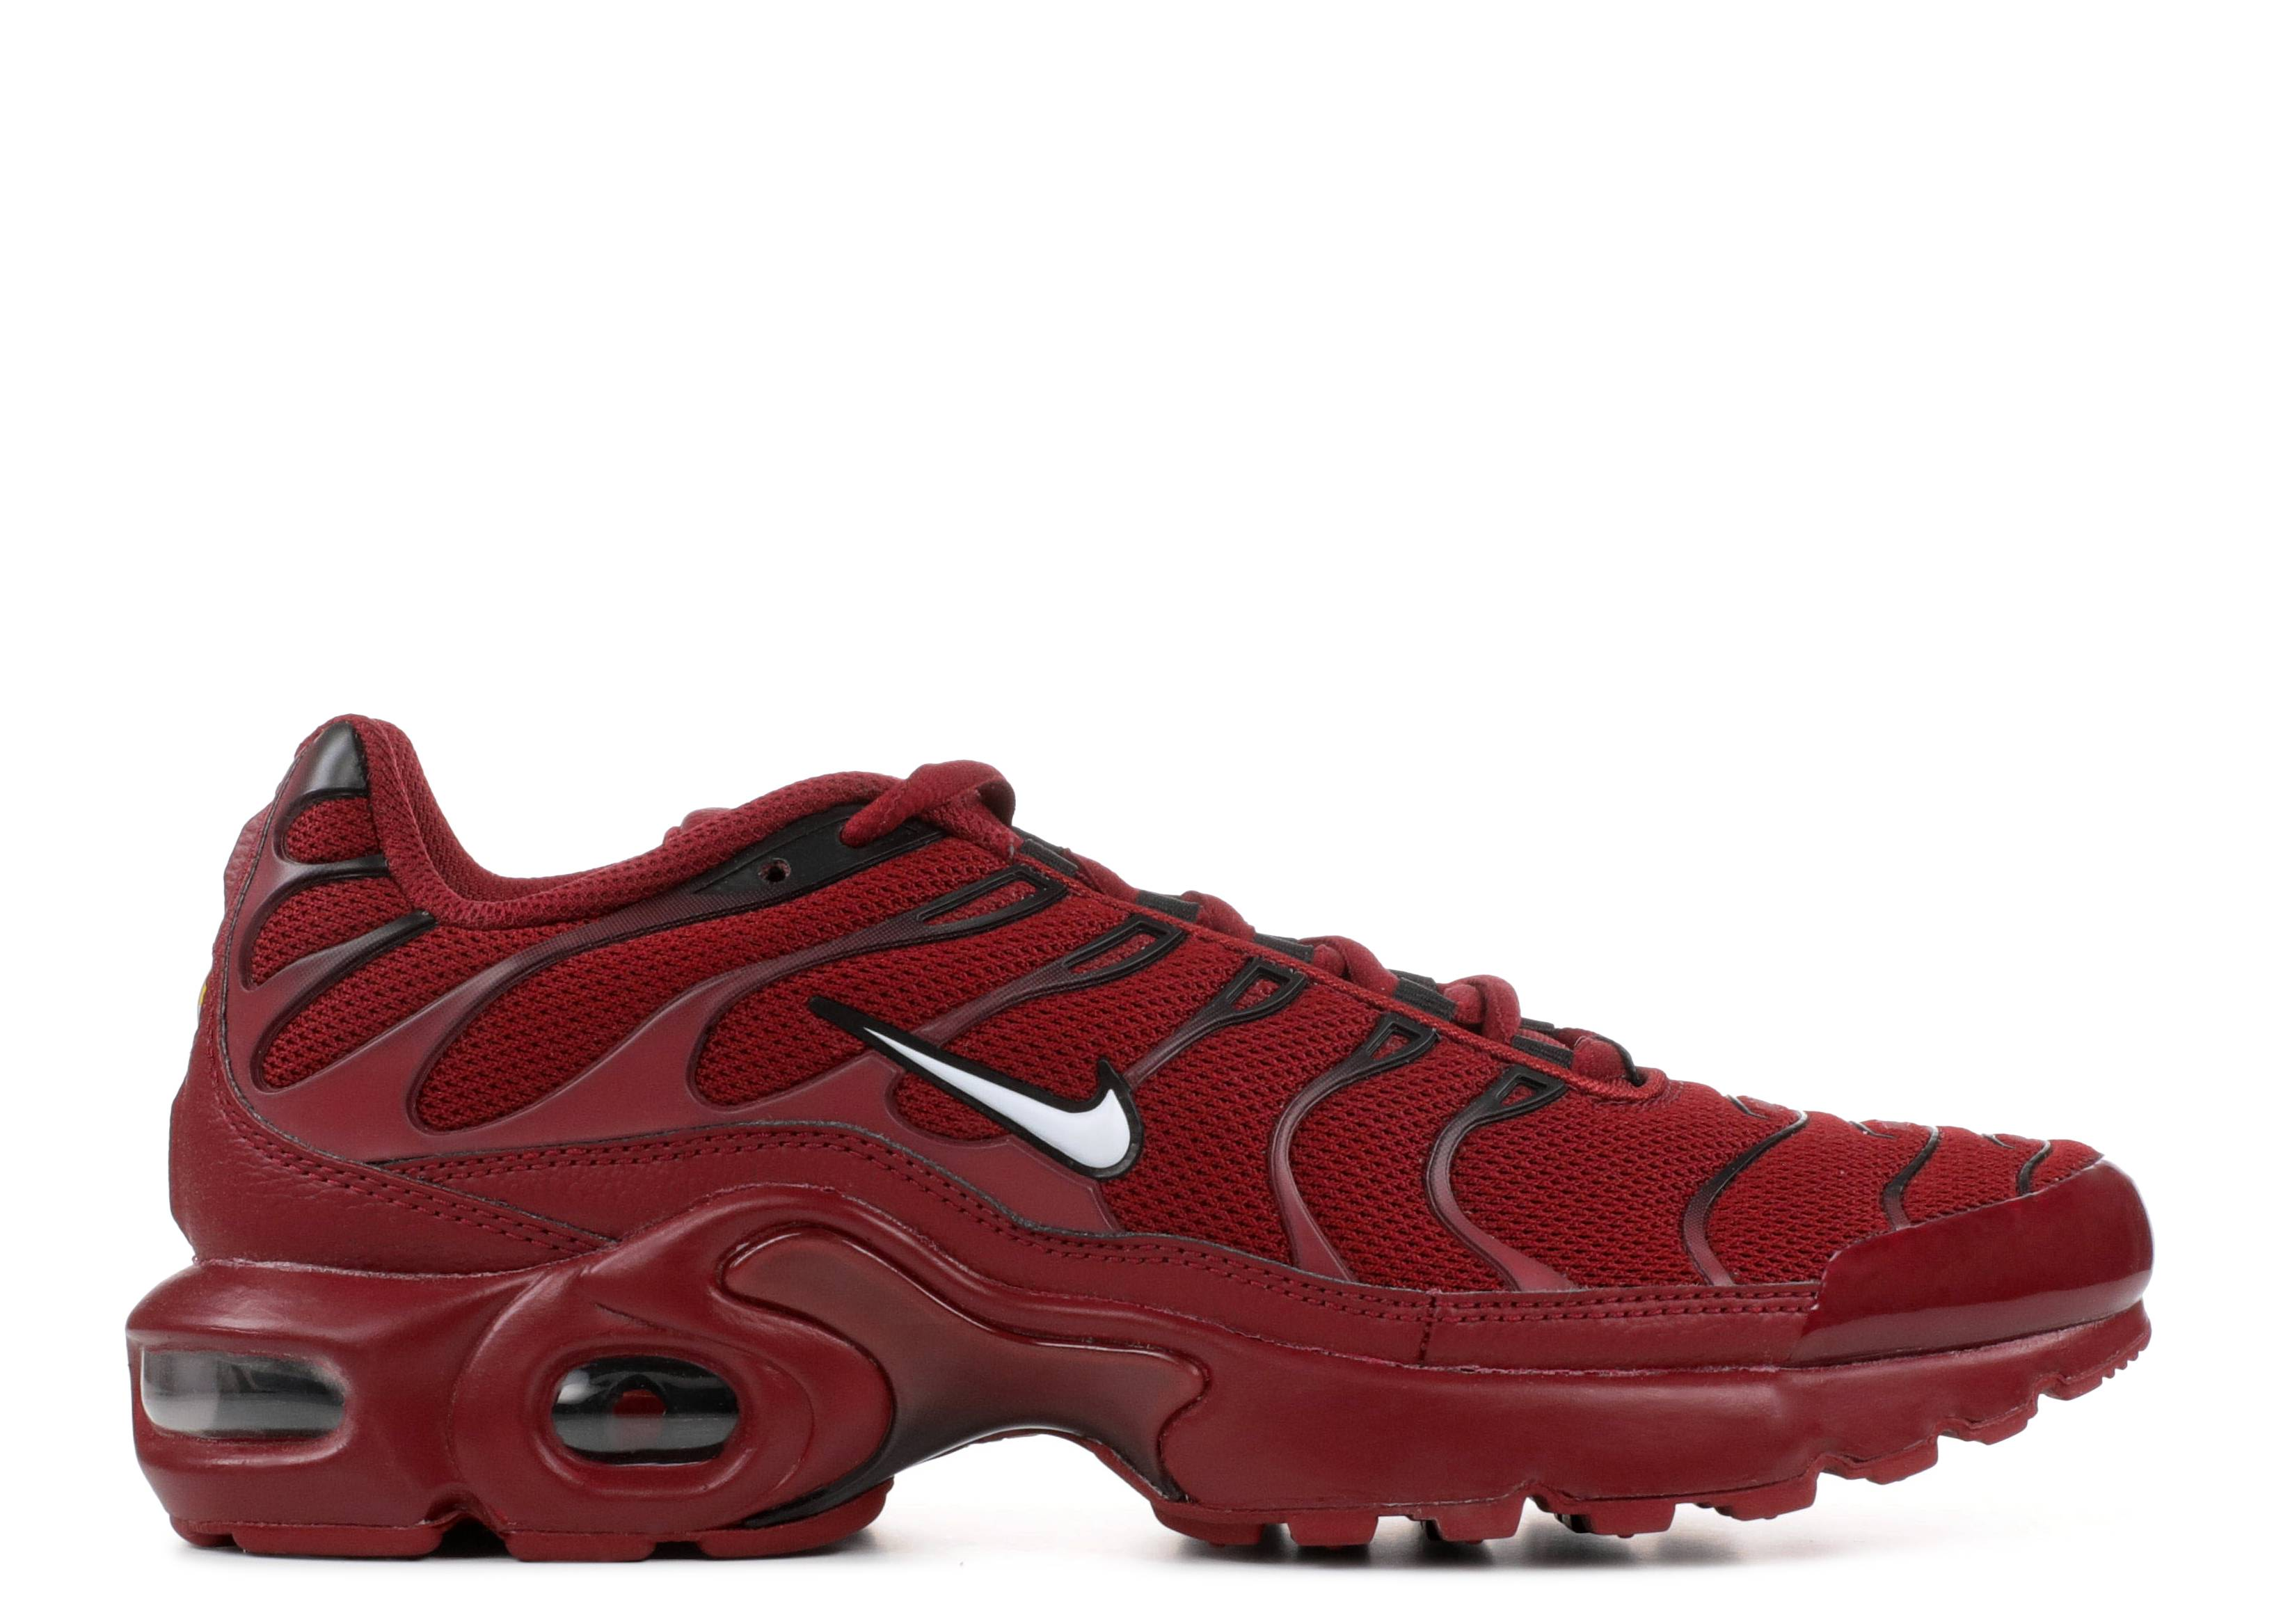 0859015c3c3a Air Max Plus (GS) - Nike - 655020 603 - team red white-black ...